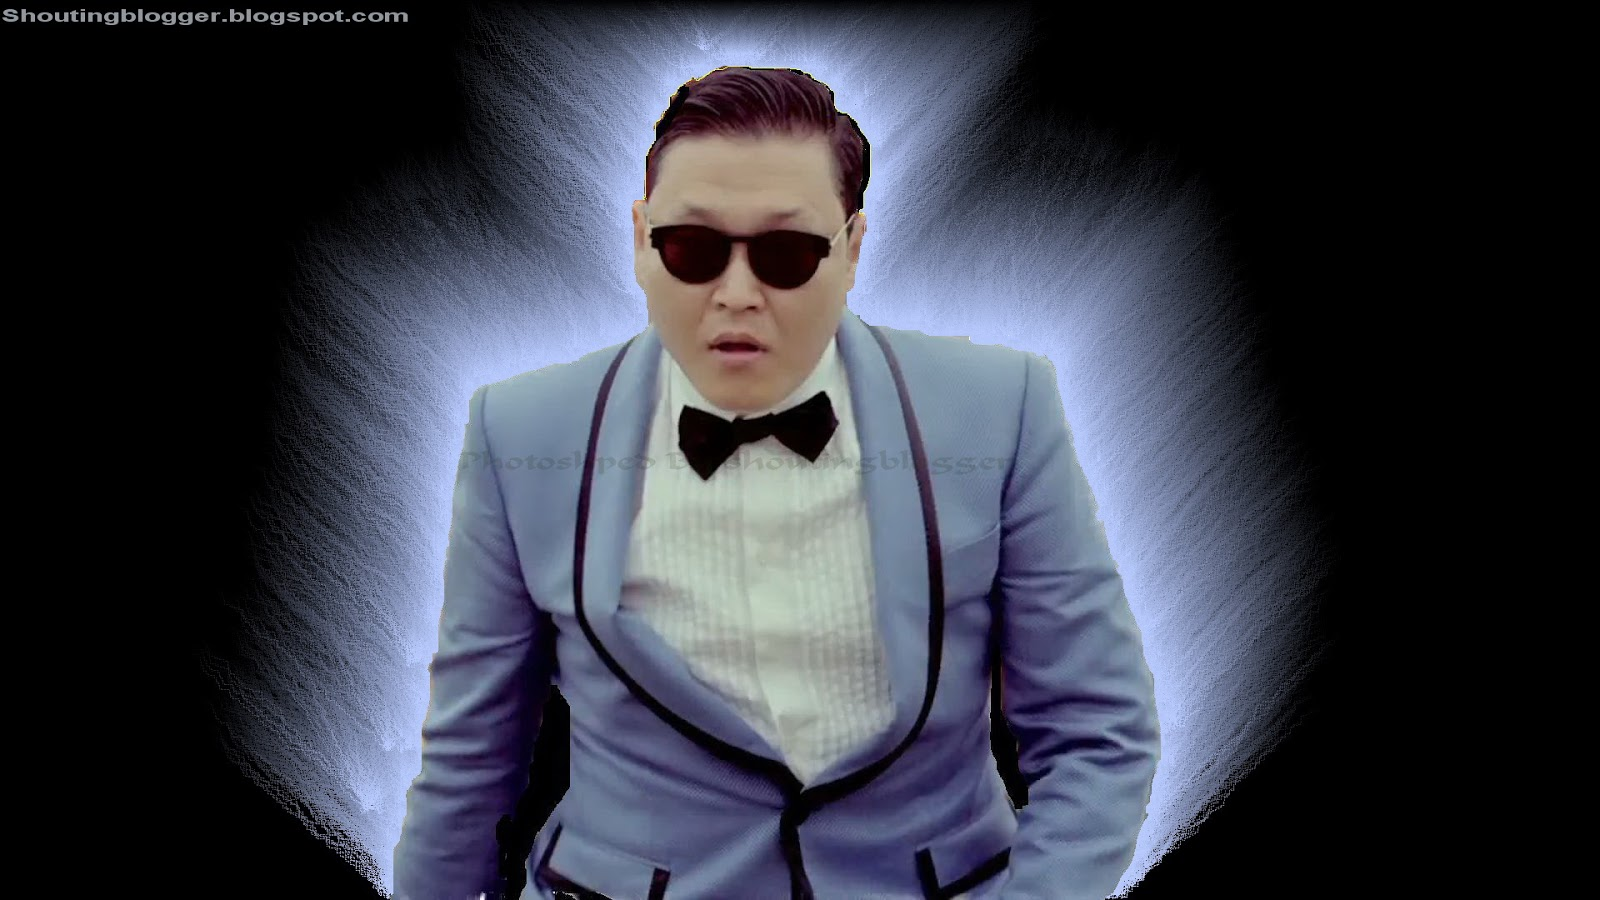 who is best psy or justin bieber about psy park jae sang